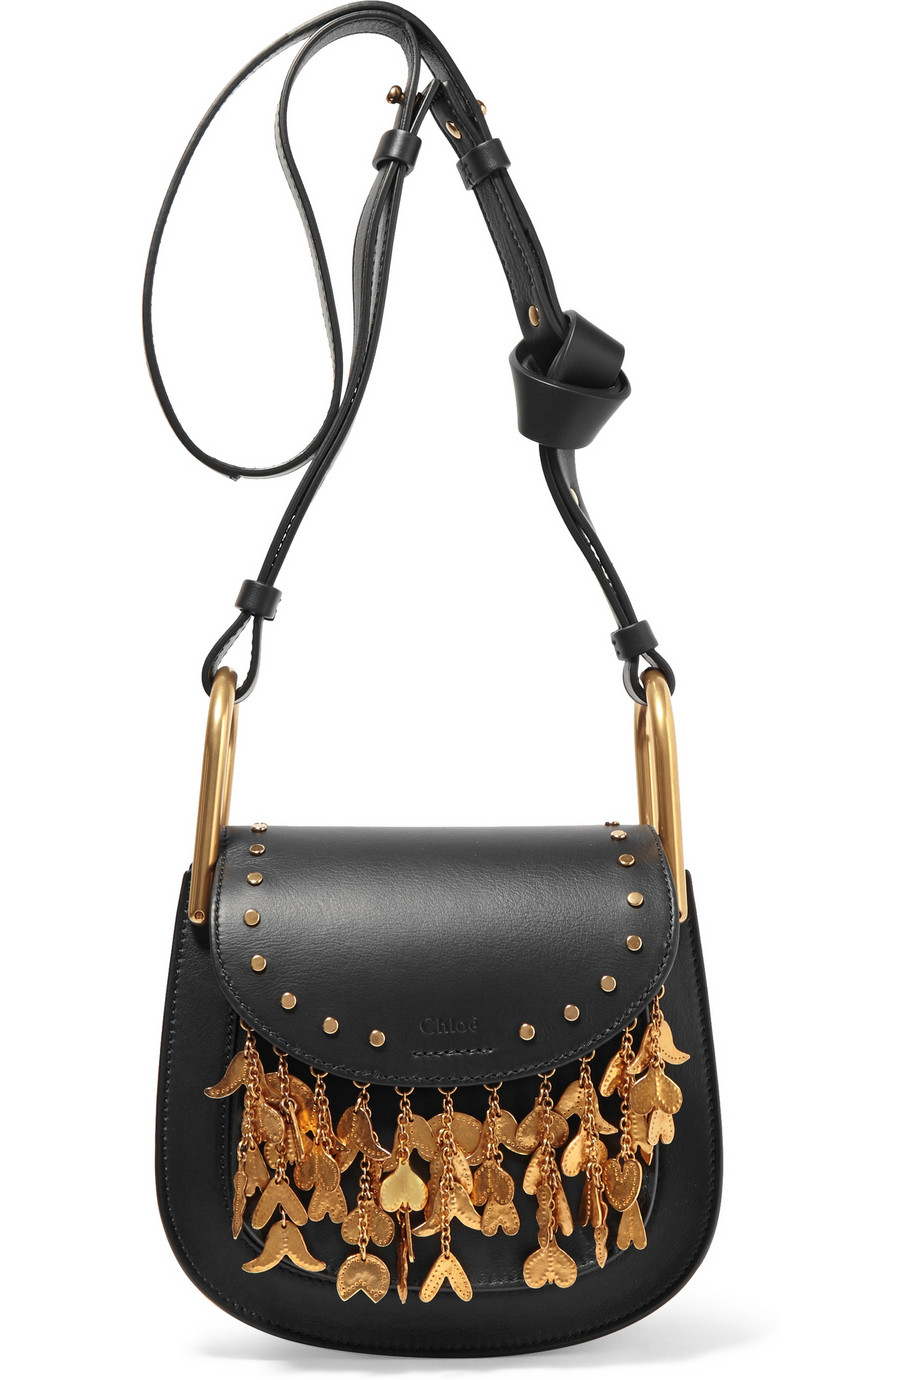 chlo chlo hudson mini embellished leather shoulder bag in black lyst. Black Bedroom Furniture Sets. Home Design Ideas